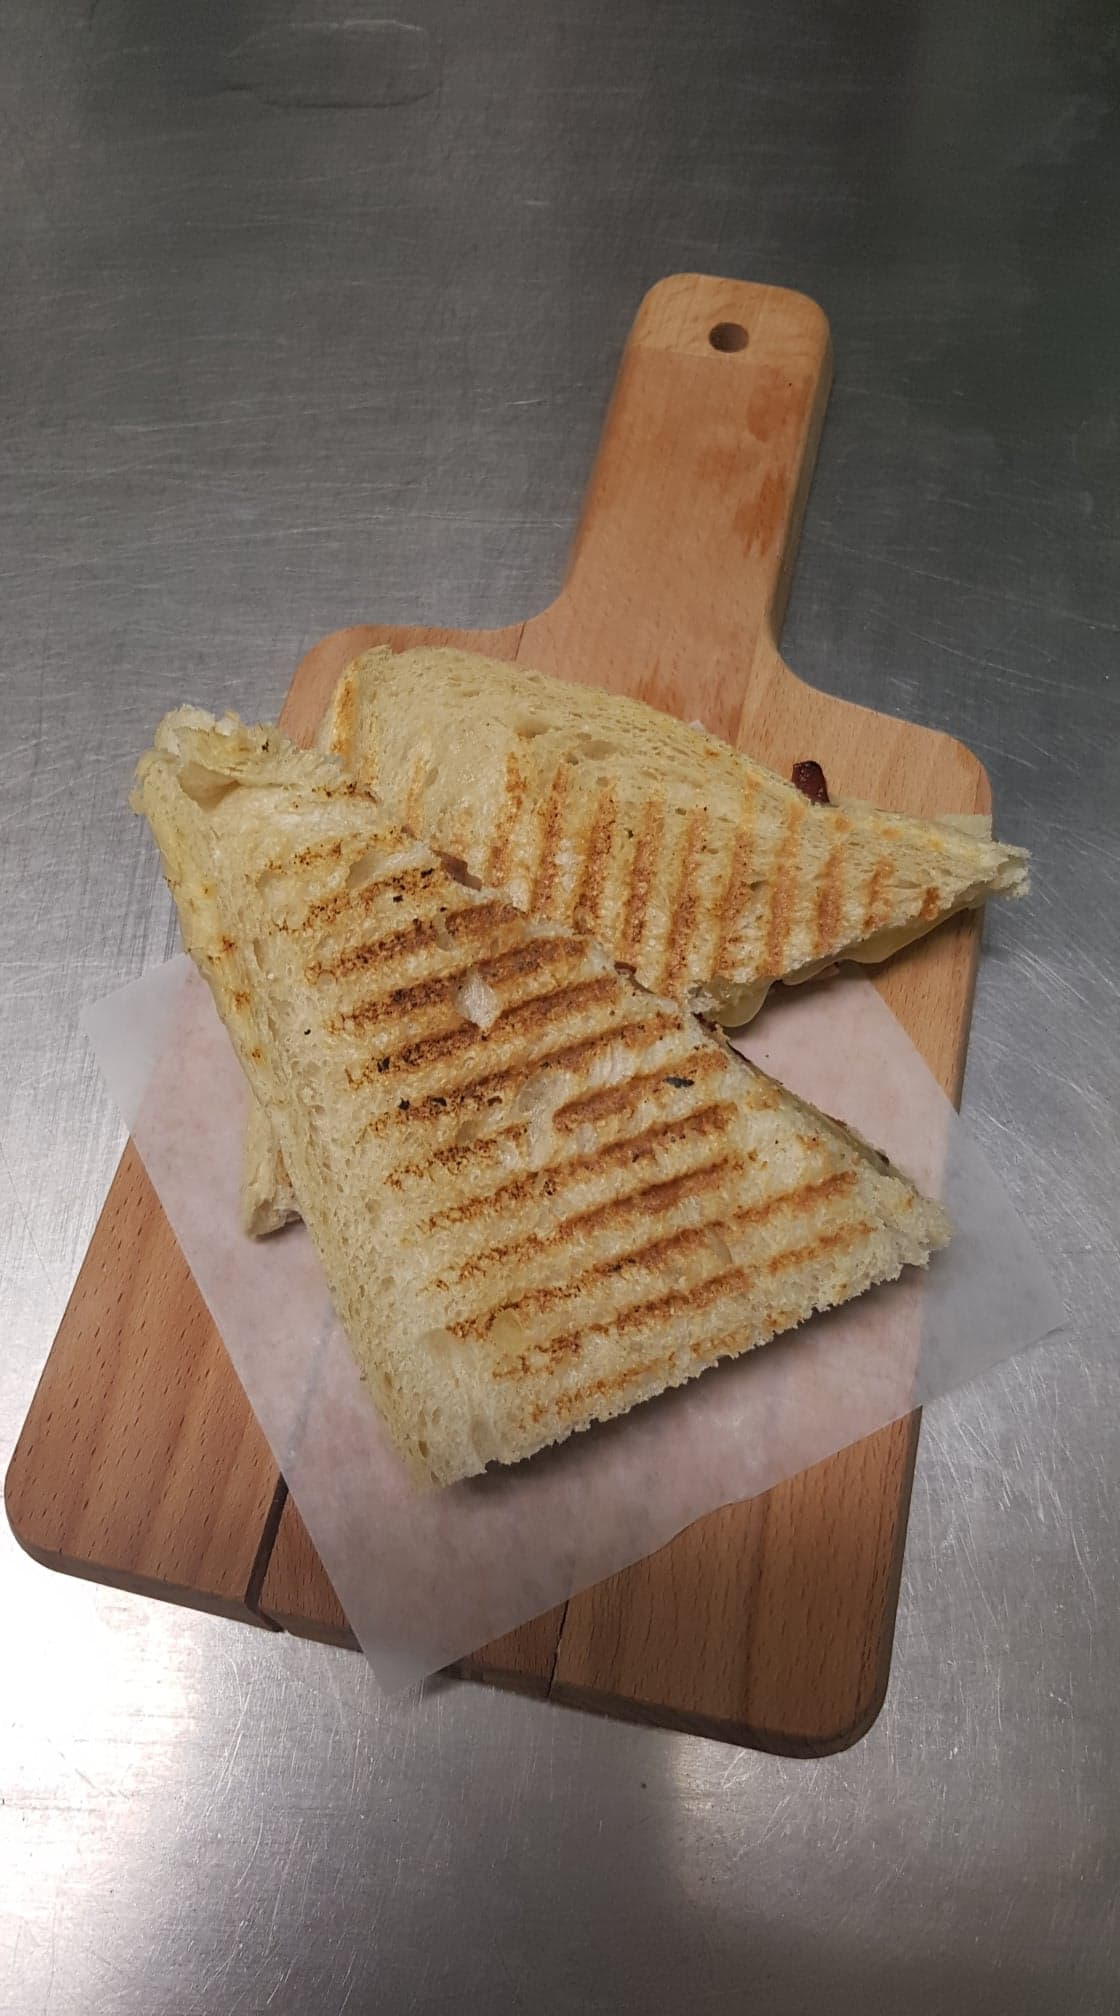 Grill cheese strait